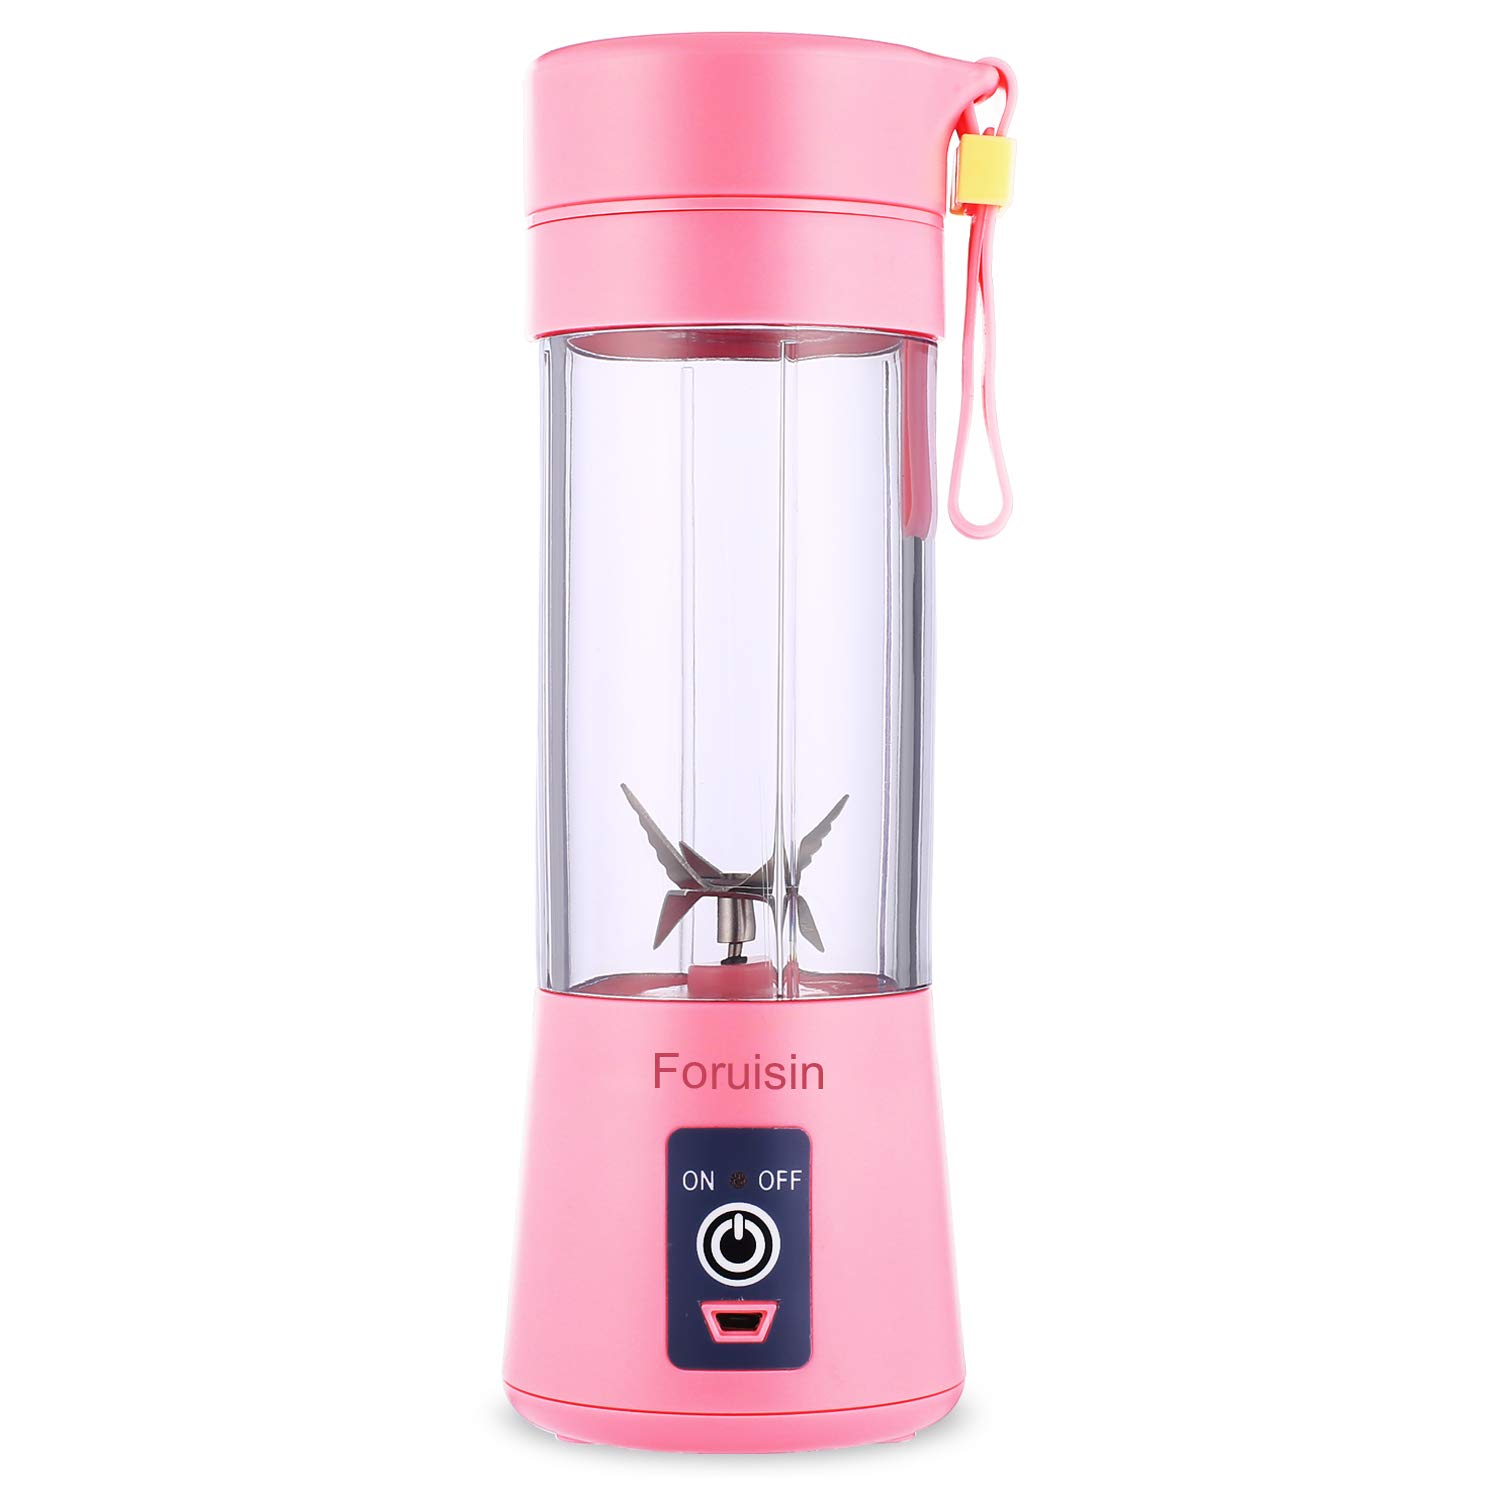 Foruisin Portable Personal Blender, Household Juicer fruit shake Mixer -Six Blades, 380ml Baby cooking machine with USB Charger Cable (Pink) by Foruisin